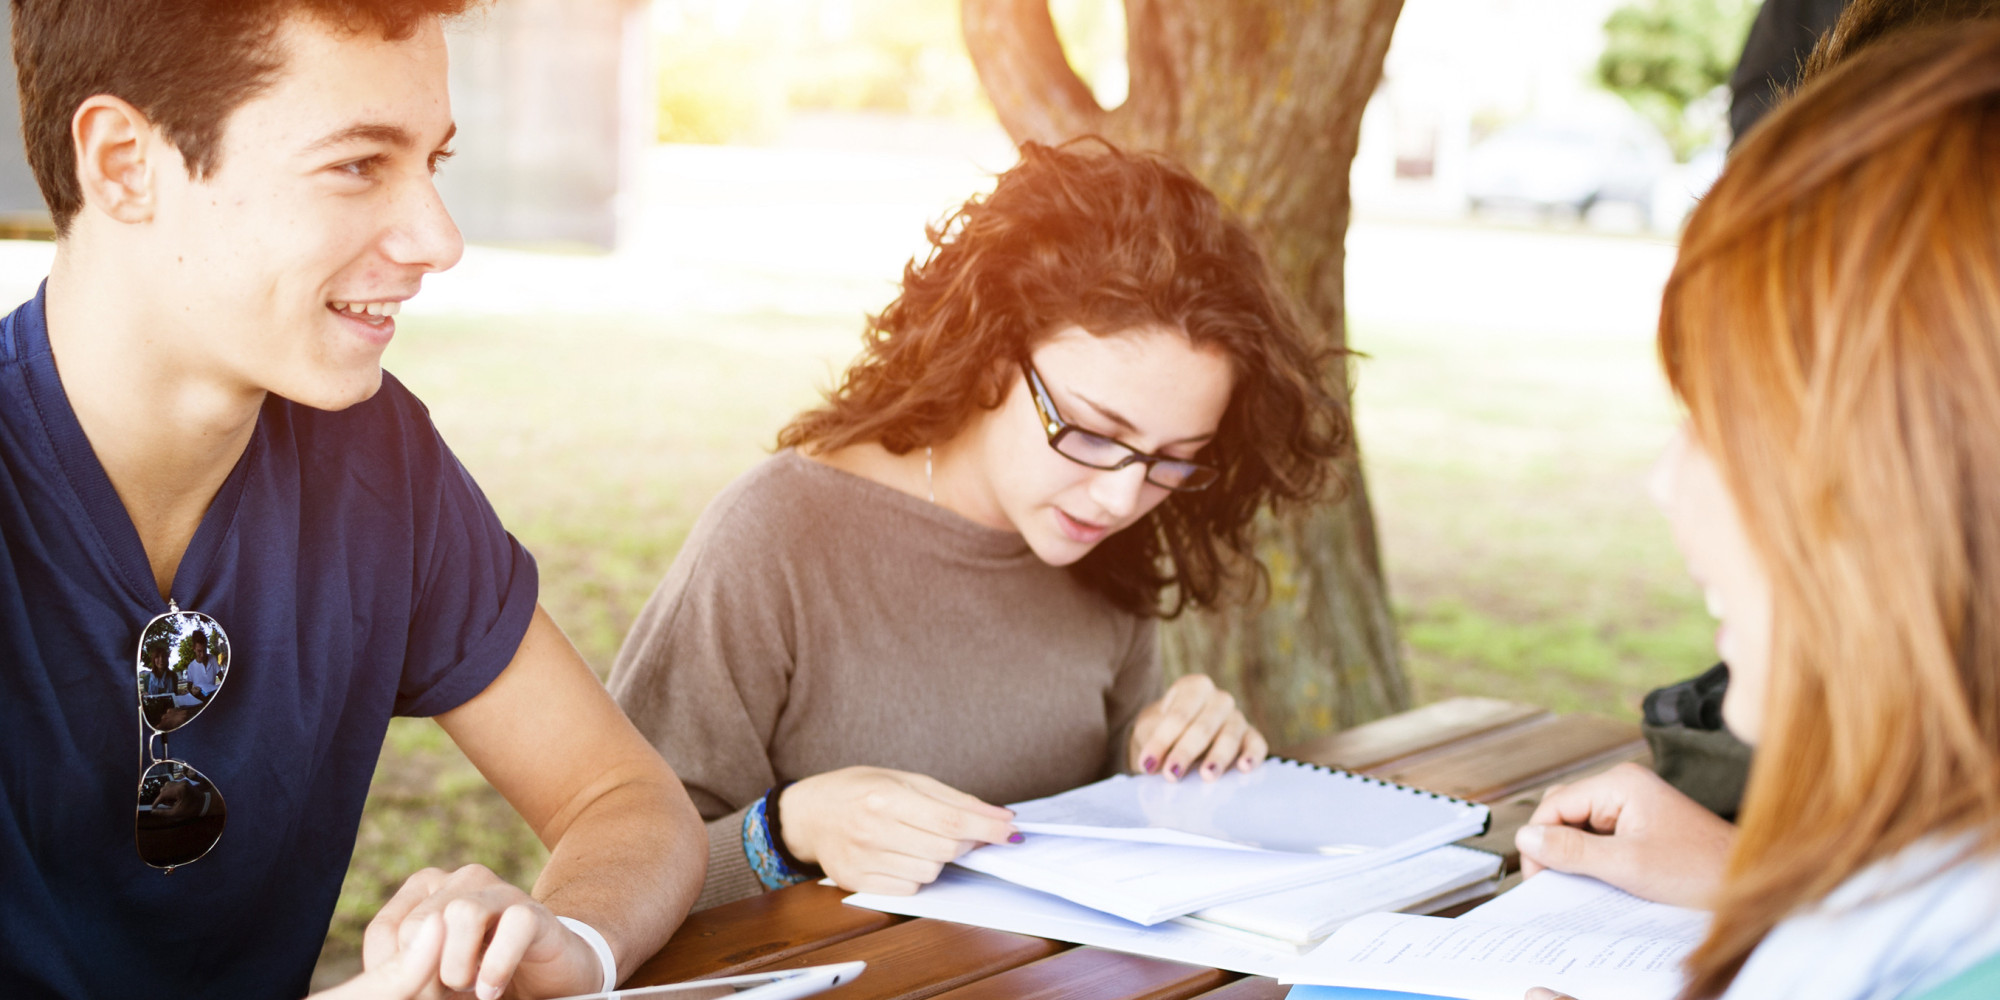 o-COLLEGE-STUDENT-STUDYING-facebook